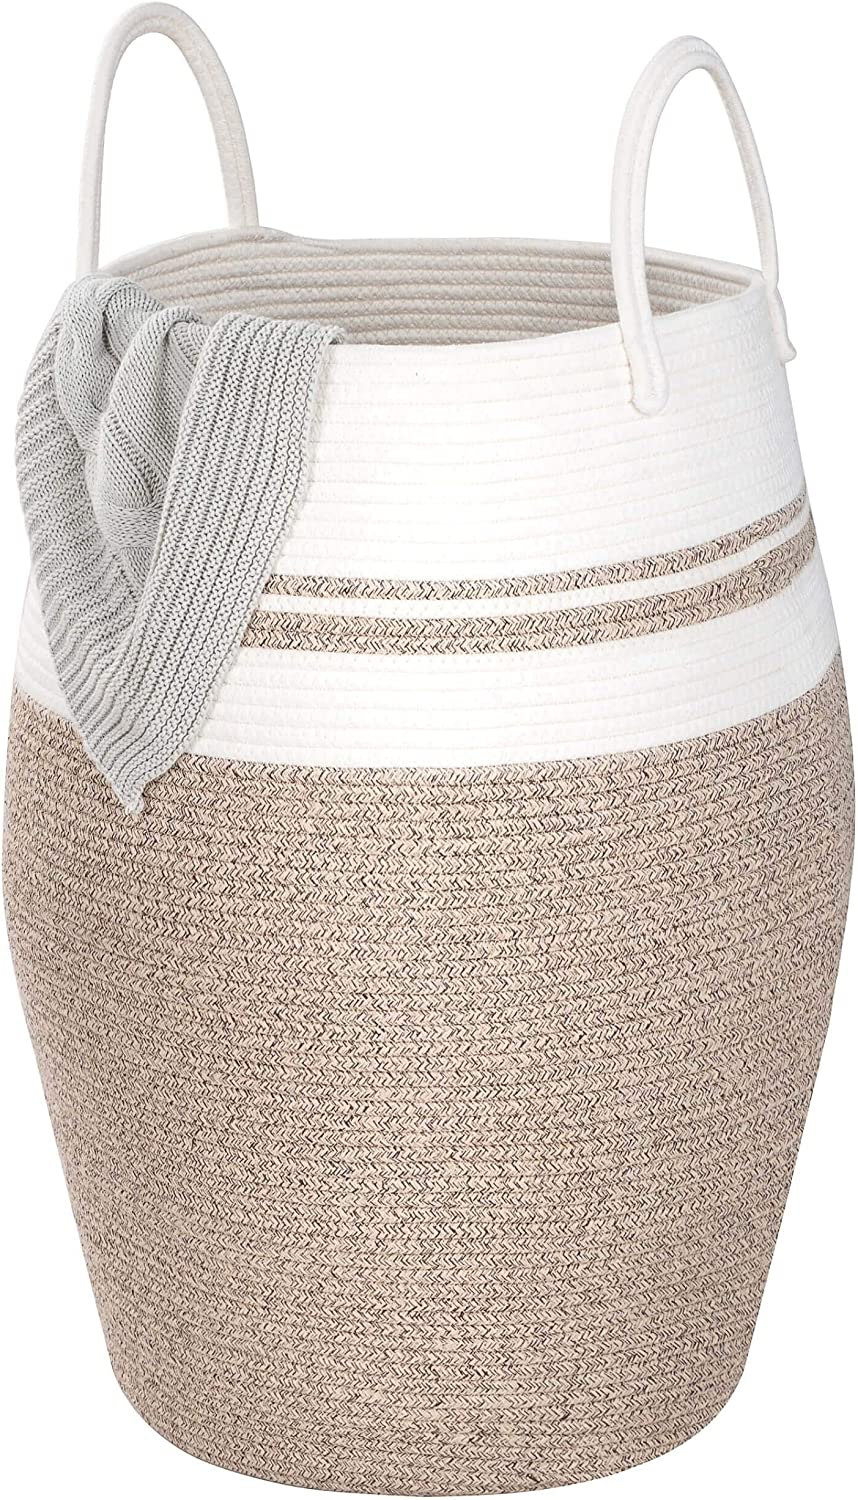 MINTWOOD Design Extra Large 25.6 Inches High Decorative Woven Cotton Rope Basket, Tall Laundry Hamper with Handles, Blanket Basket Living Room, Storage Baskets for Toys, Throws, Pillows, Towels